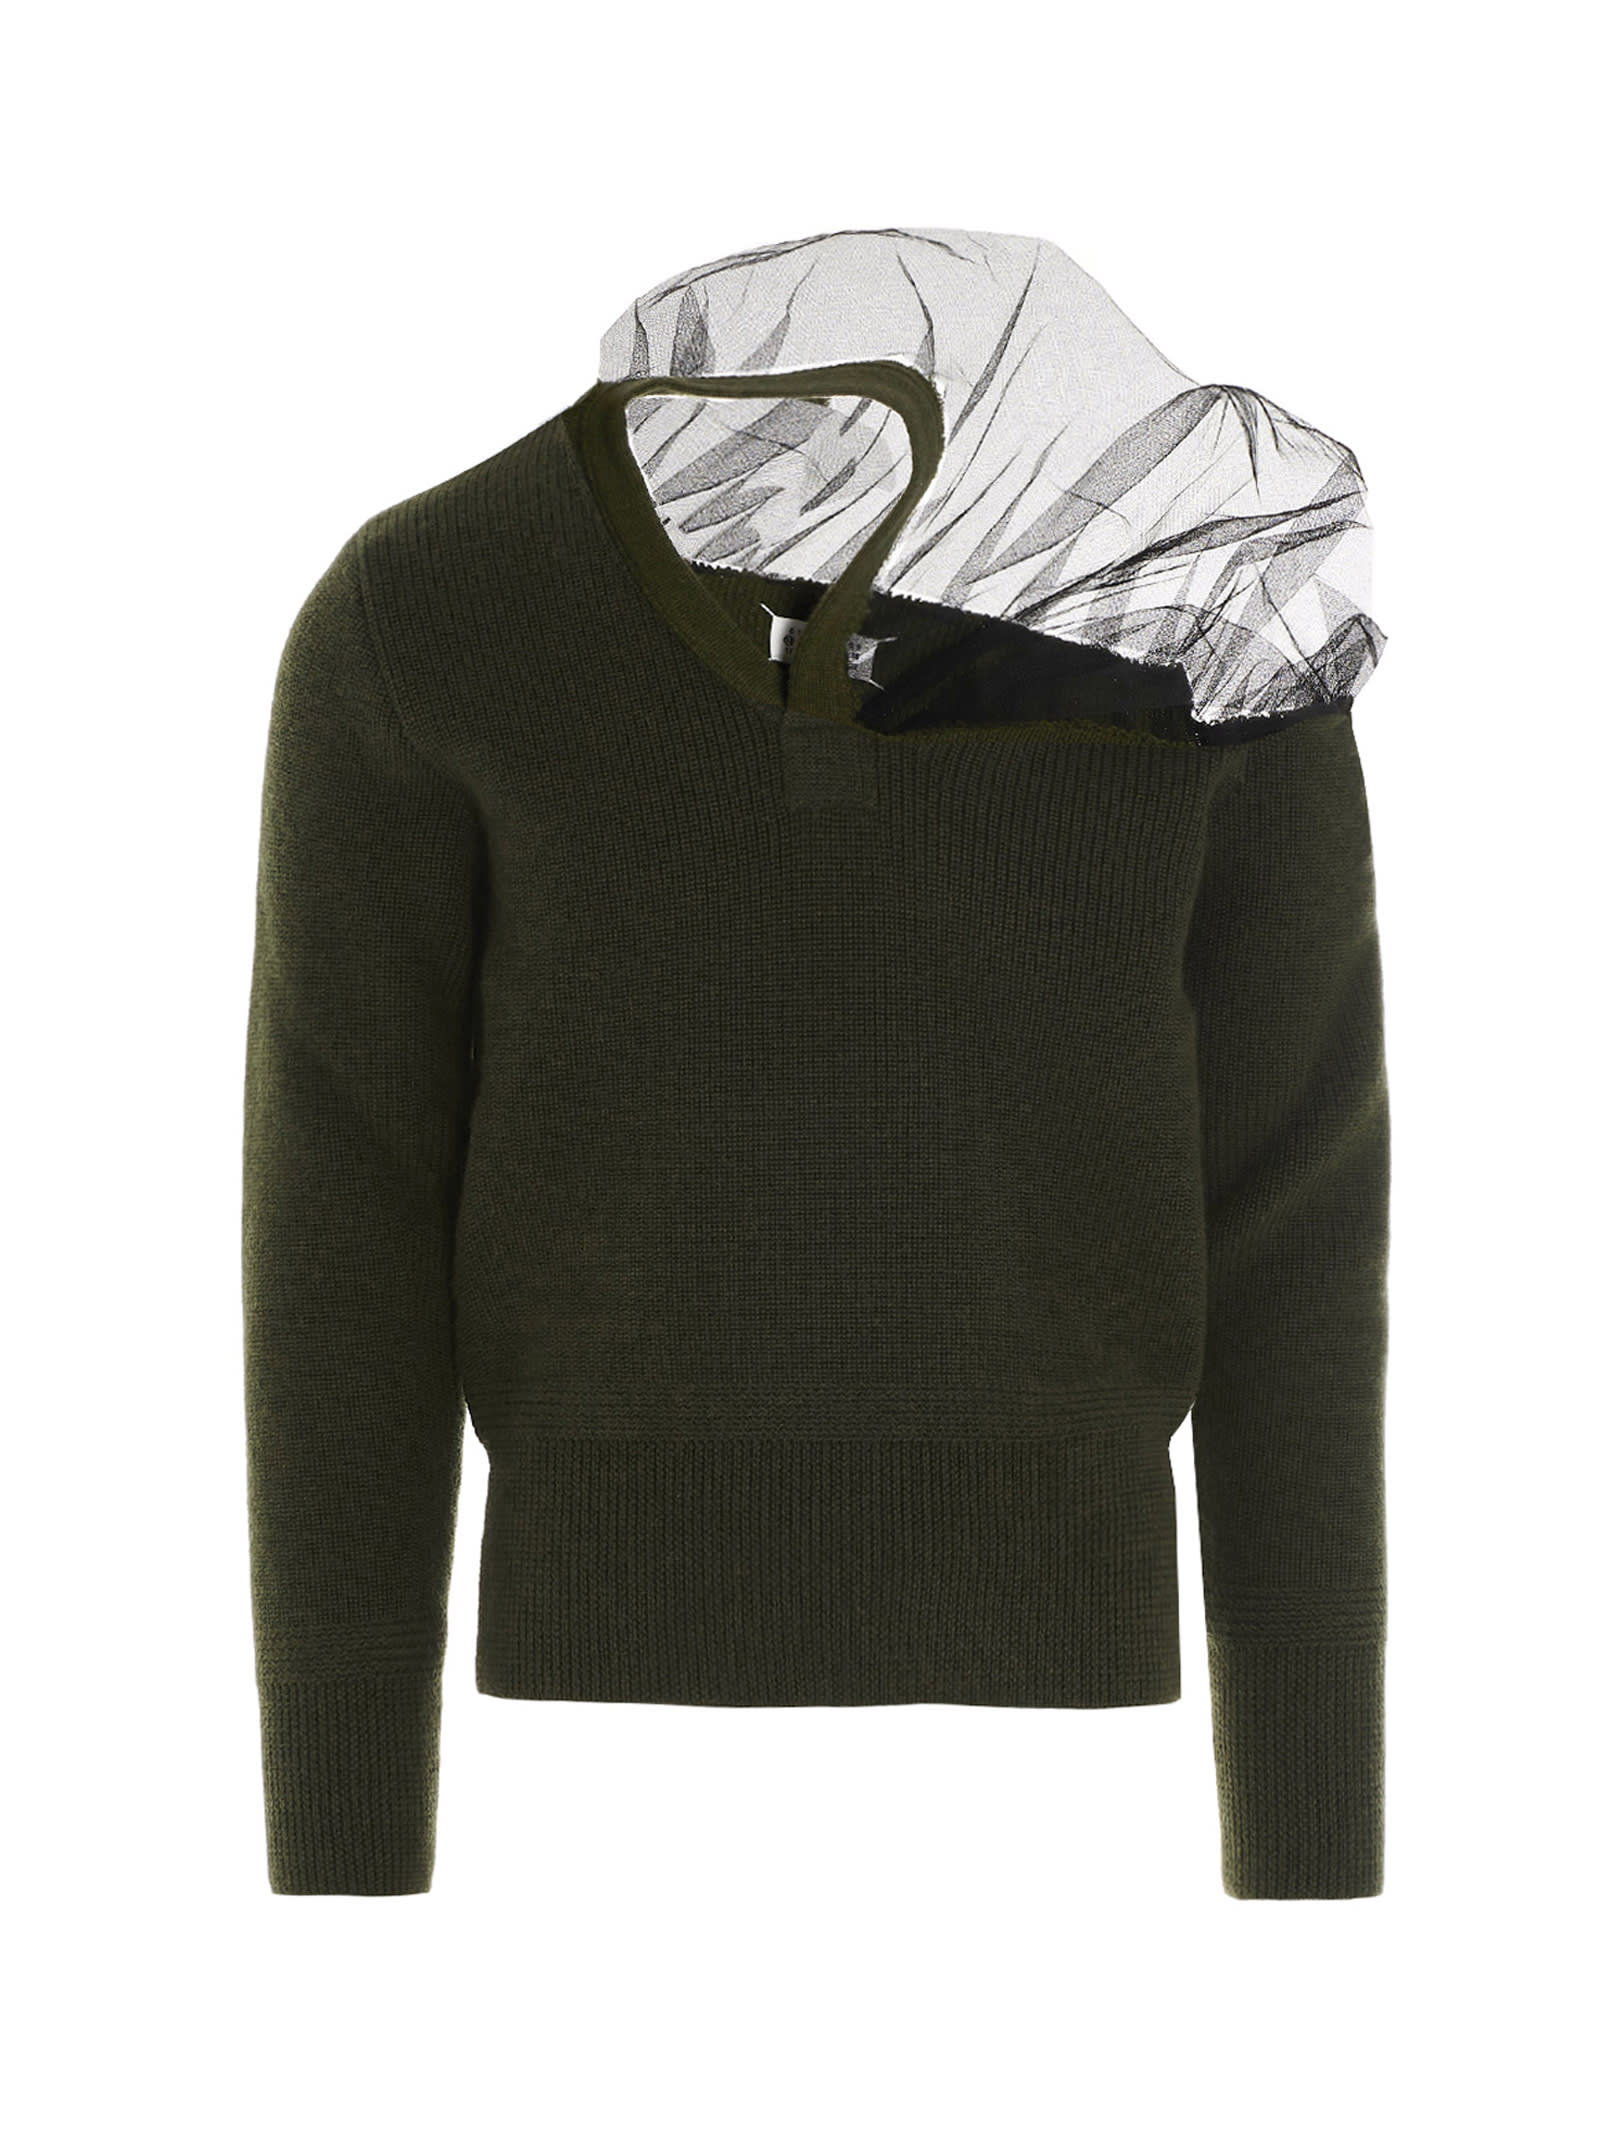 Maison Margiela Camioner Sweater In Green